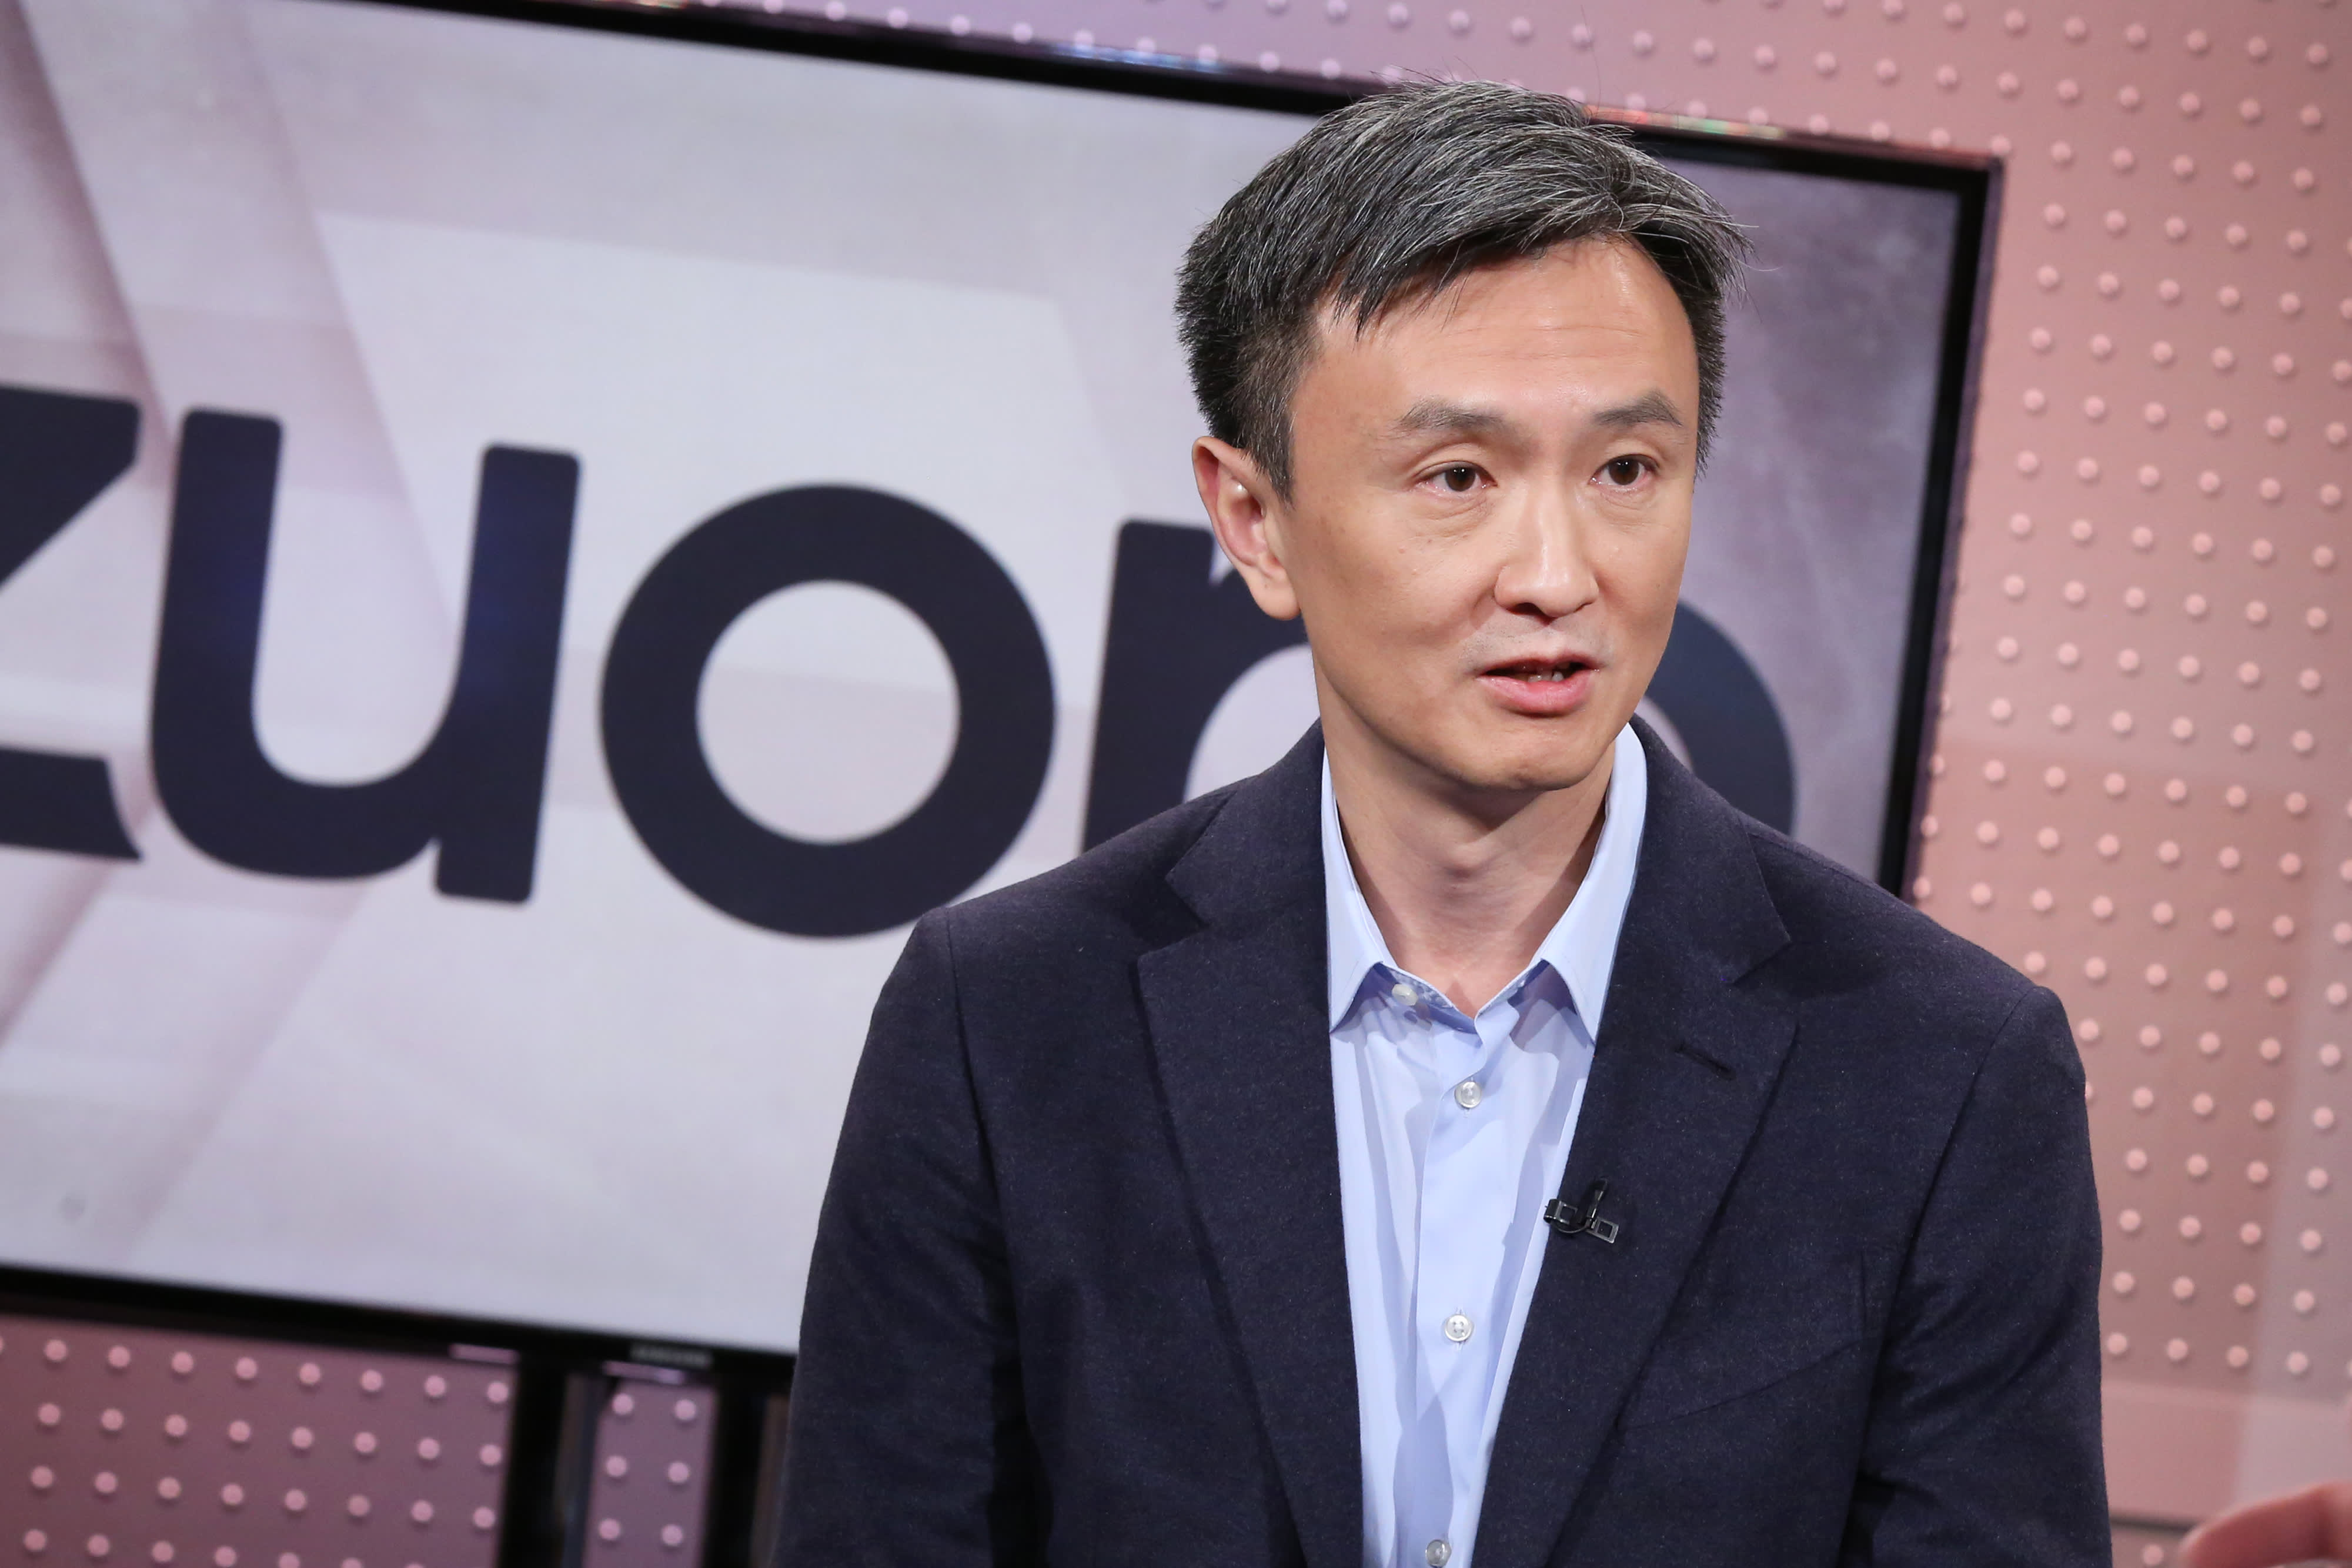 Cloud company Zuora loses almost a quarter of its value on weak guidance